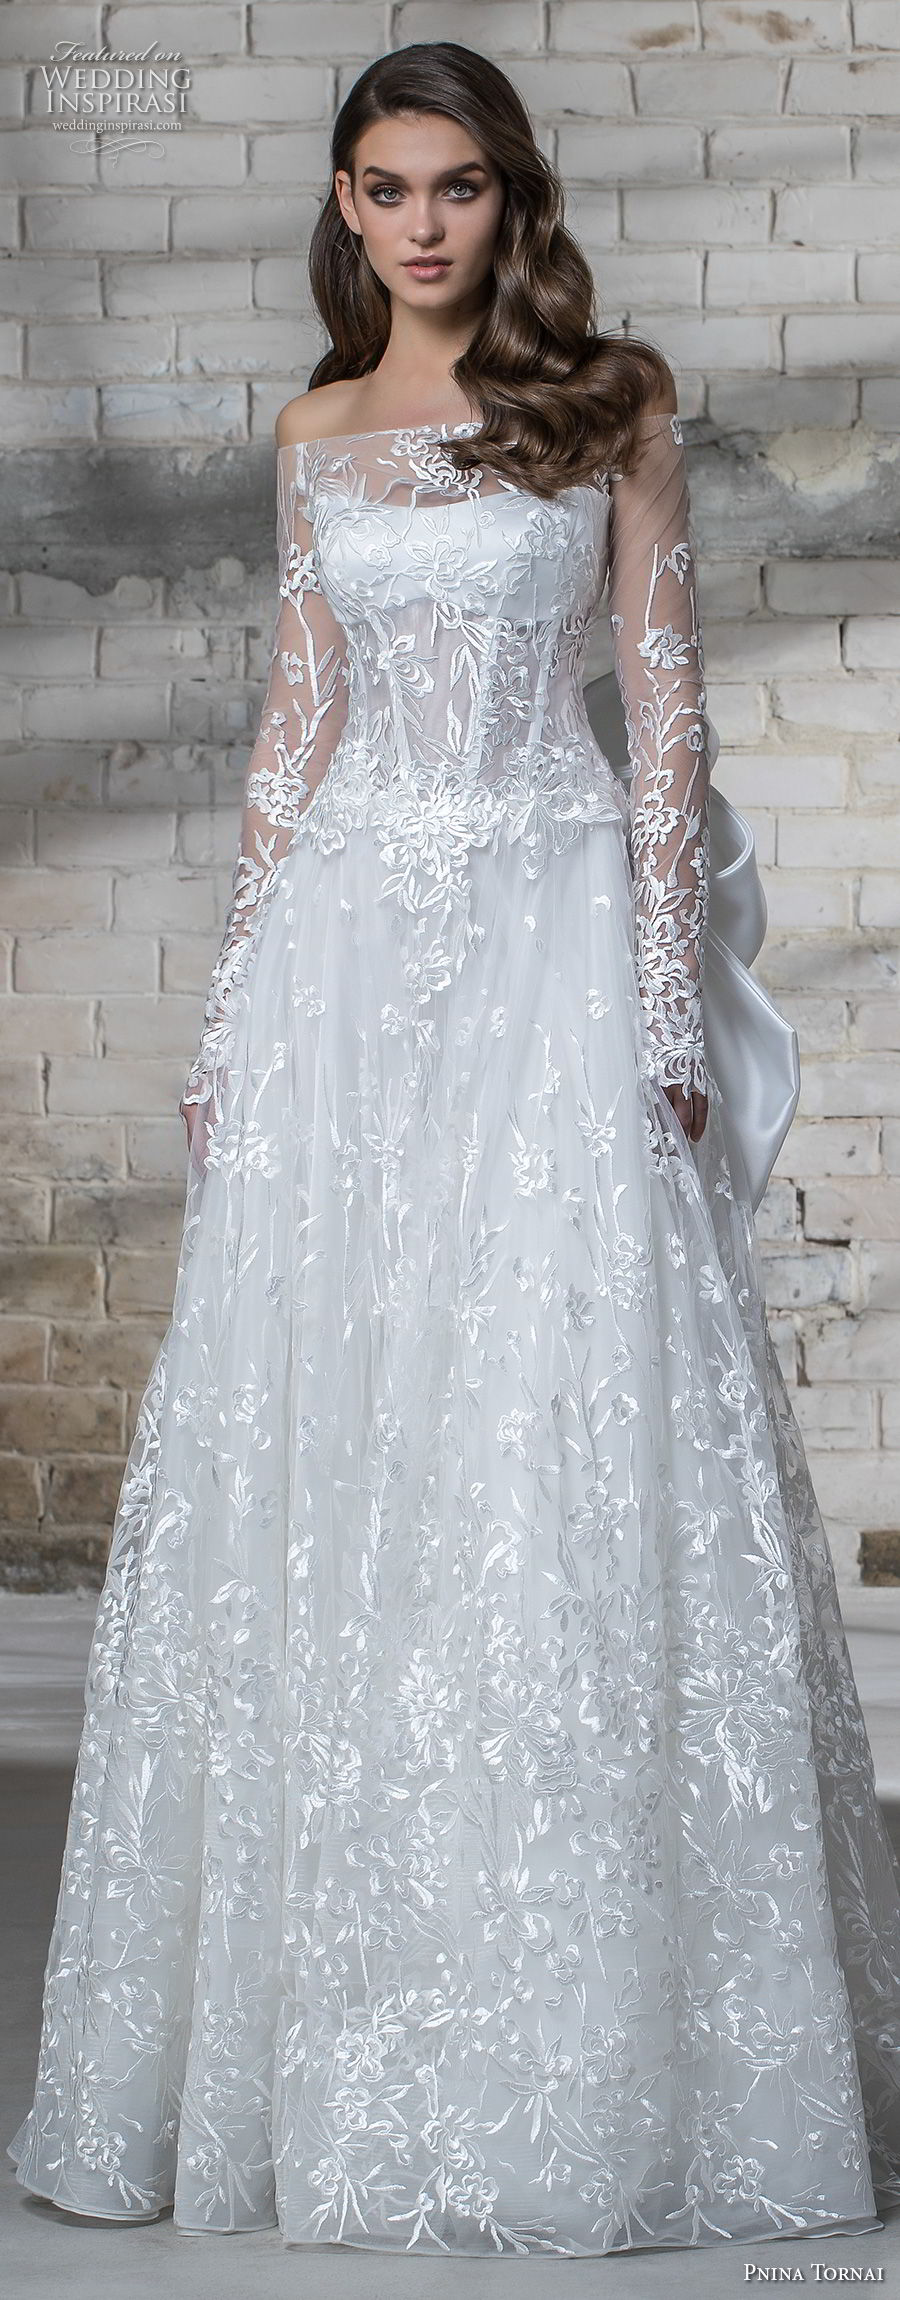 pnina tornai 2019 love bridal long sleeves off the shoulder straight across neckline full embellishment romantic modified a line wedding dress sheer lace back sweep train (3) lv